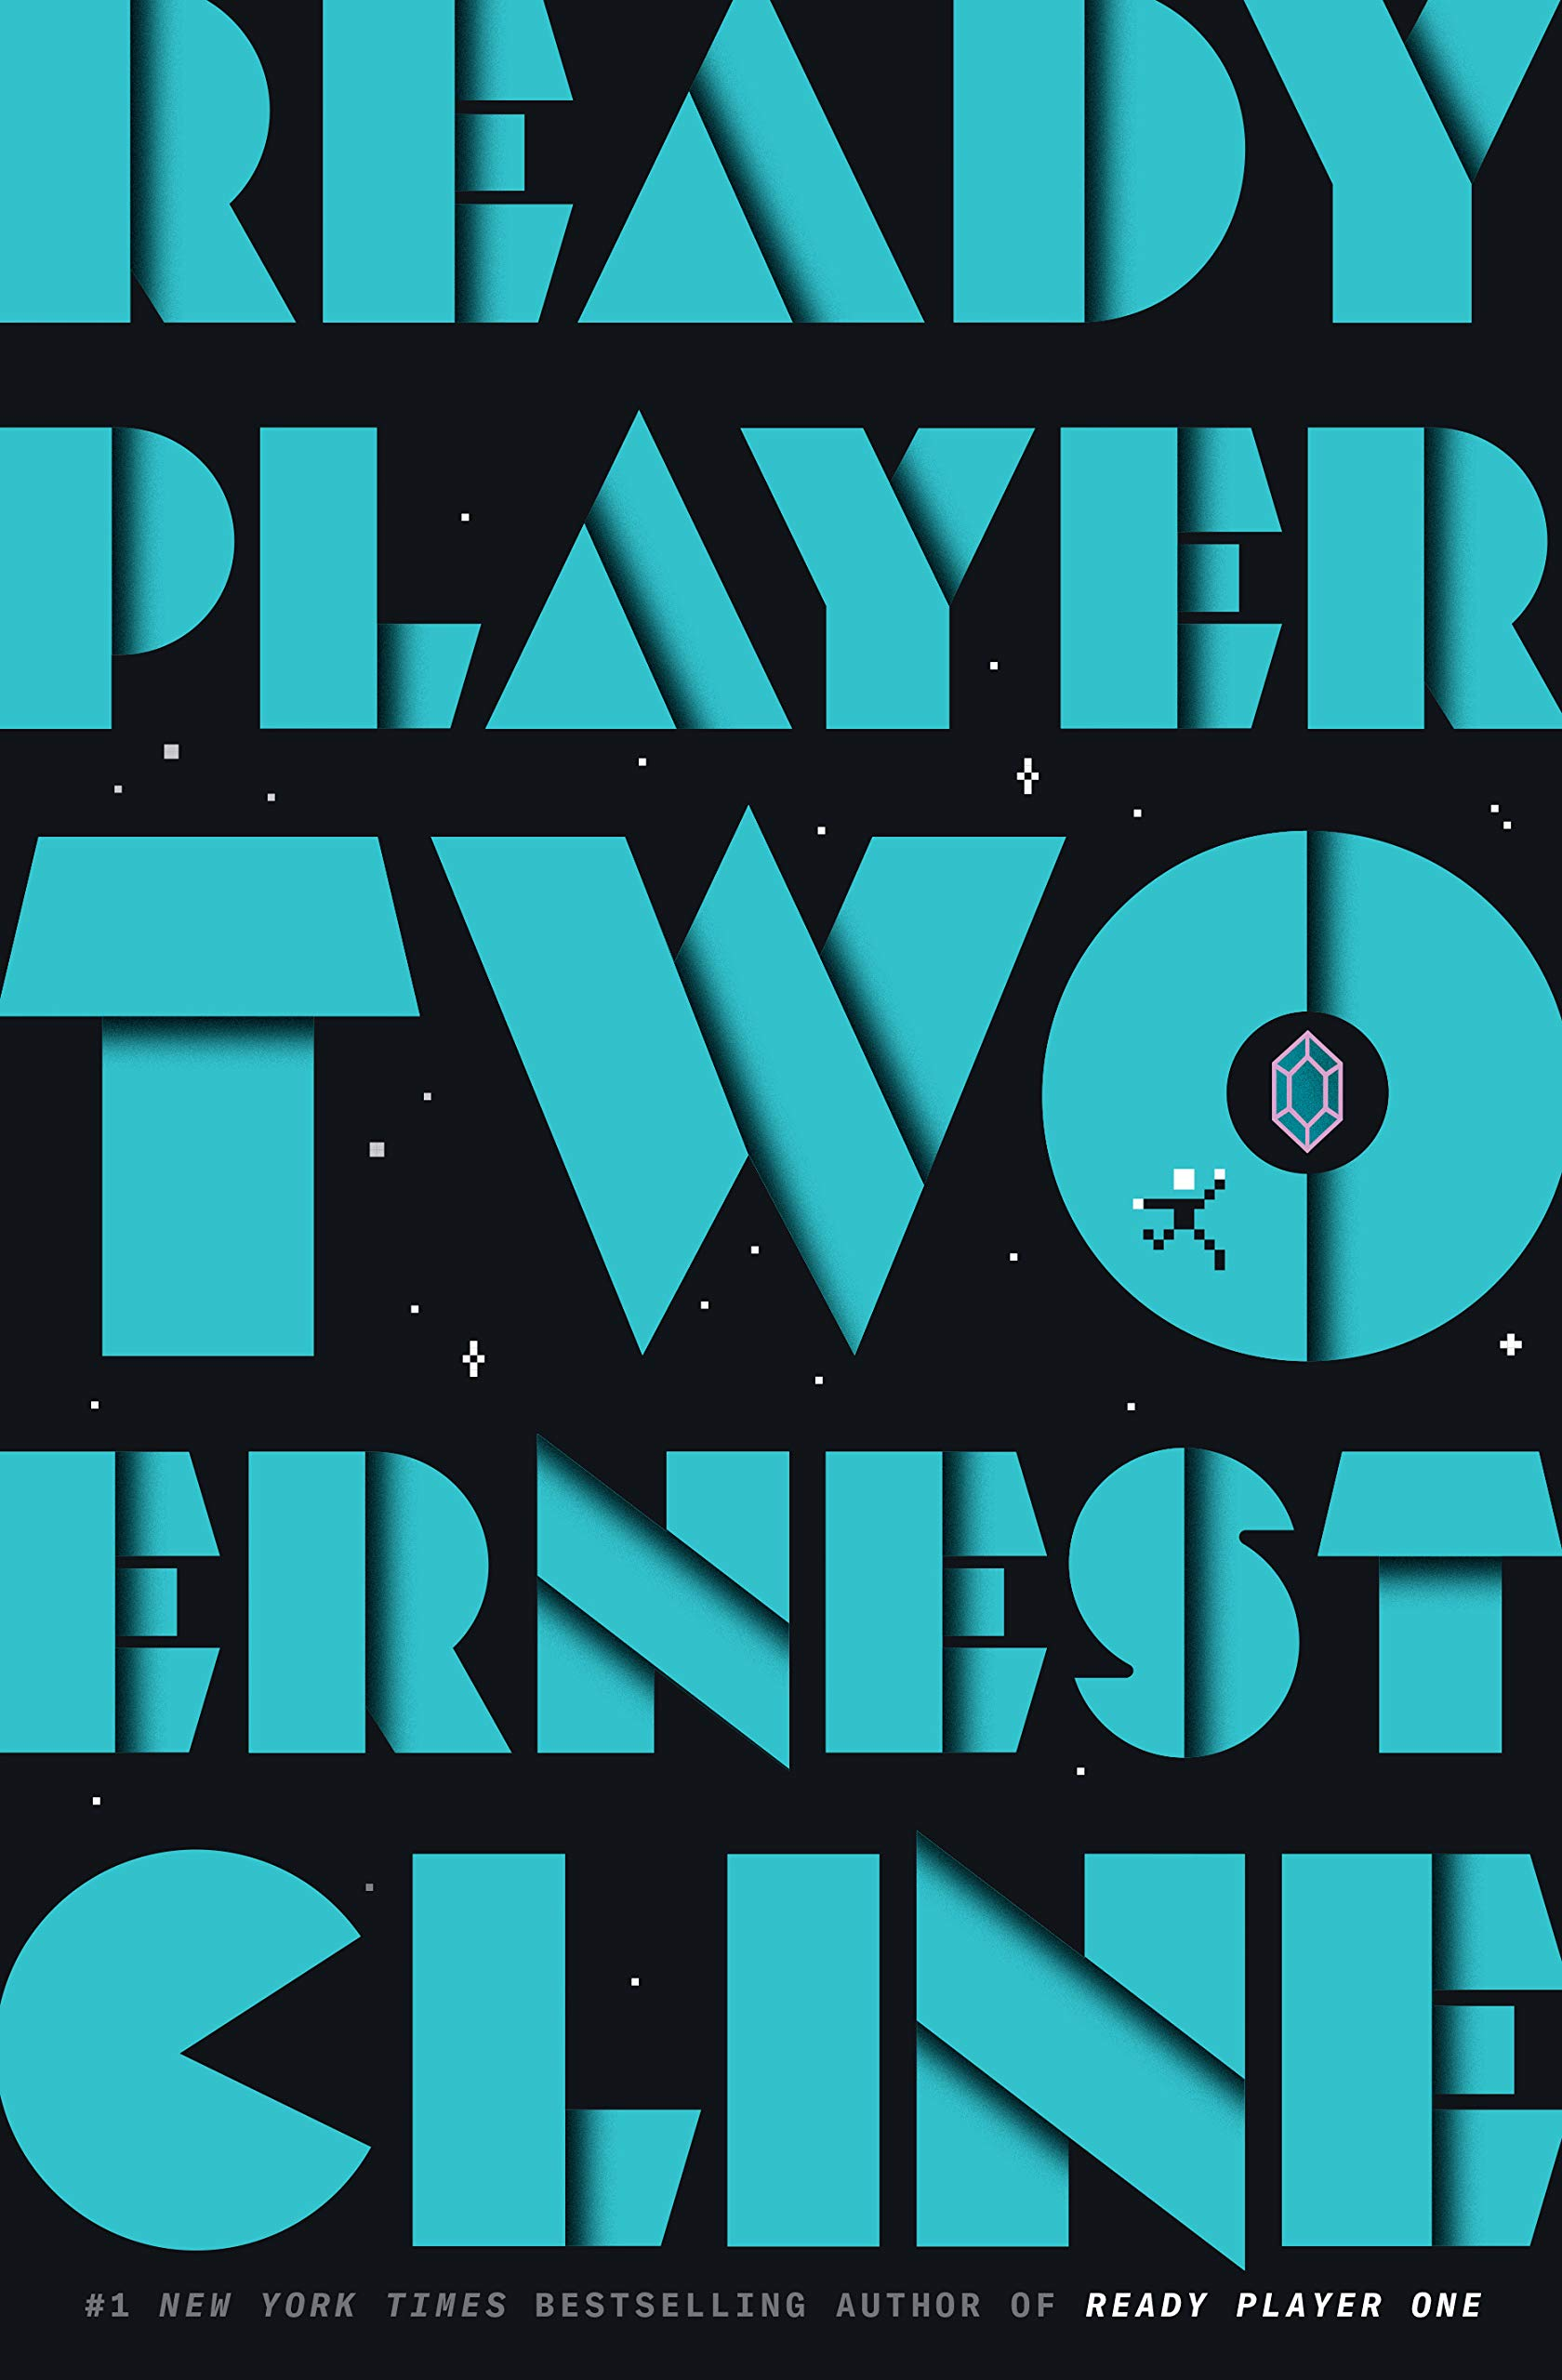 Cover image of Ready Player Two by Ernest Cline